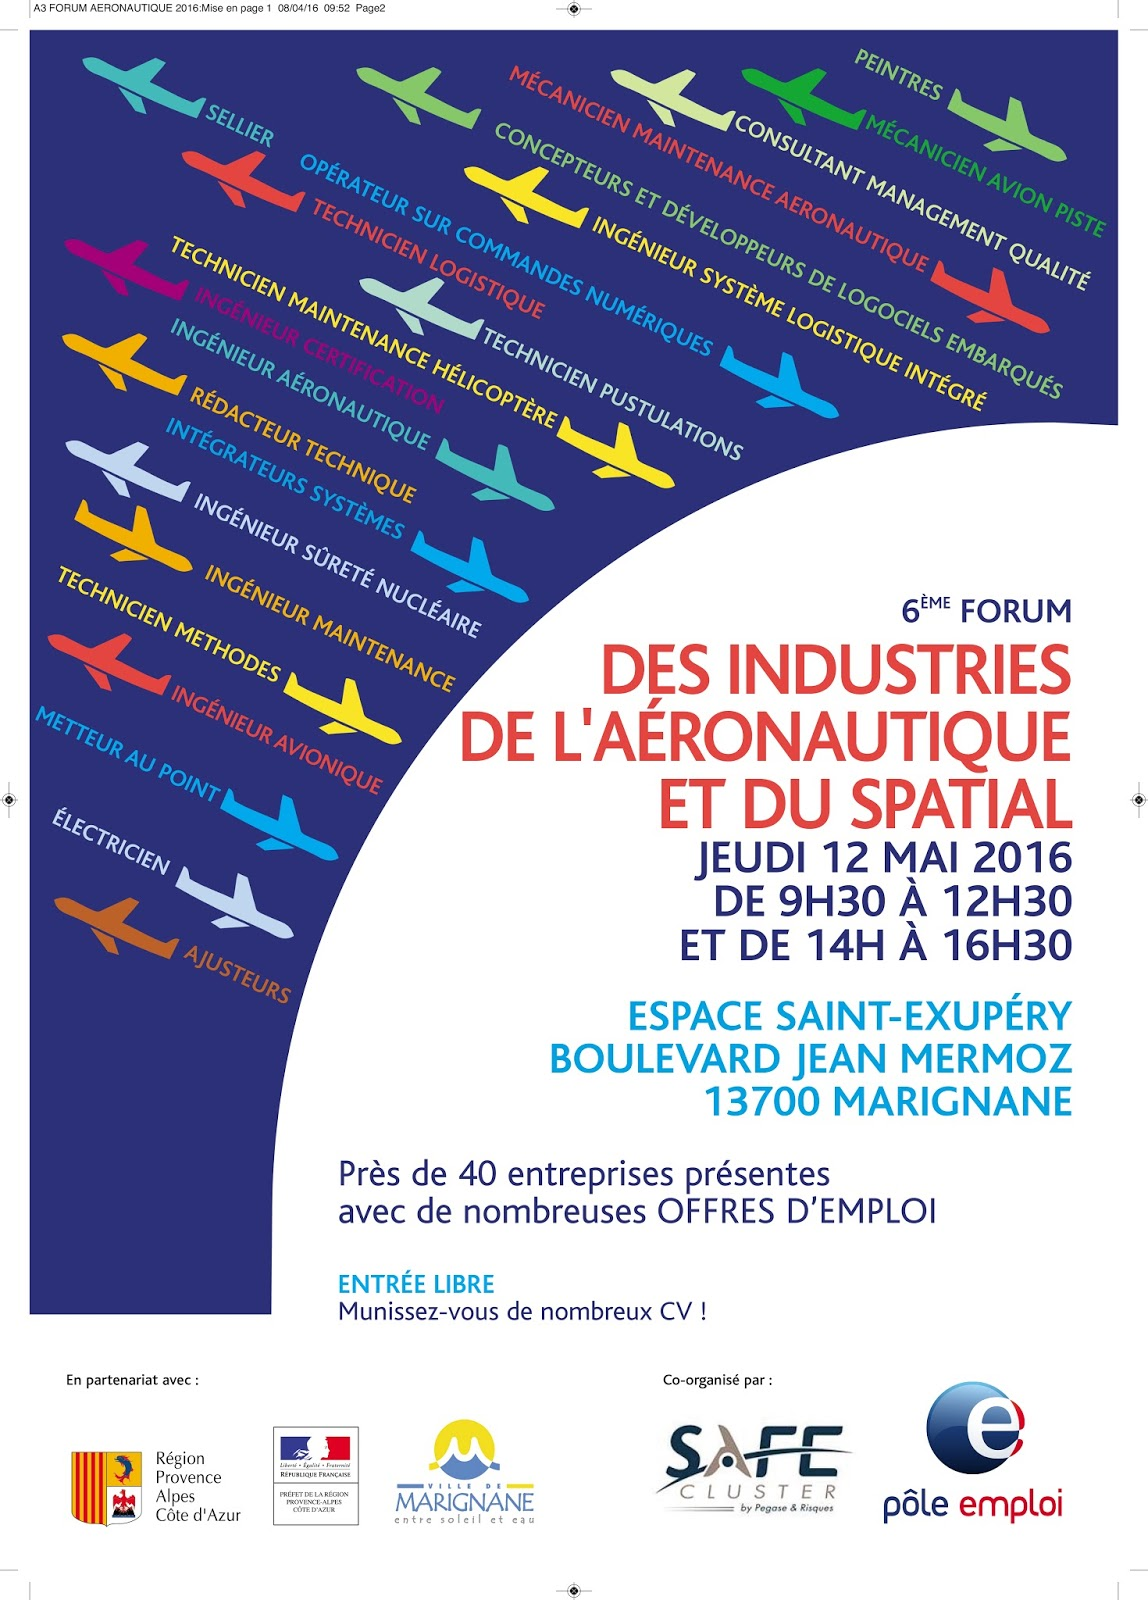 forum des industries de l 39 a ronautique et du spatial jeudi 12 mai marignane. Black Bedroom Furniture Sets. Home Design Ideas